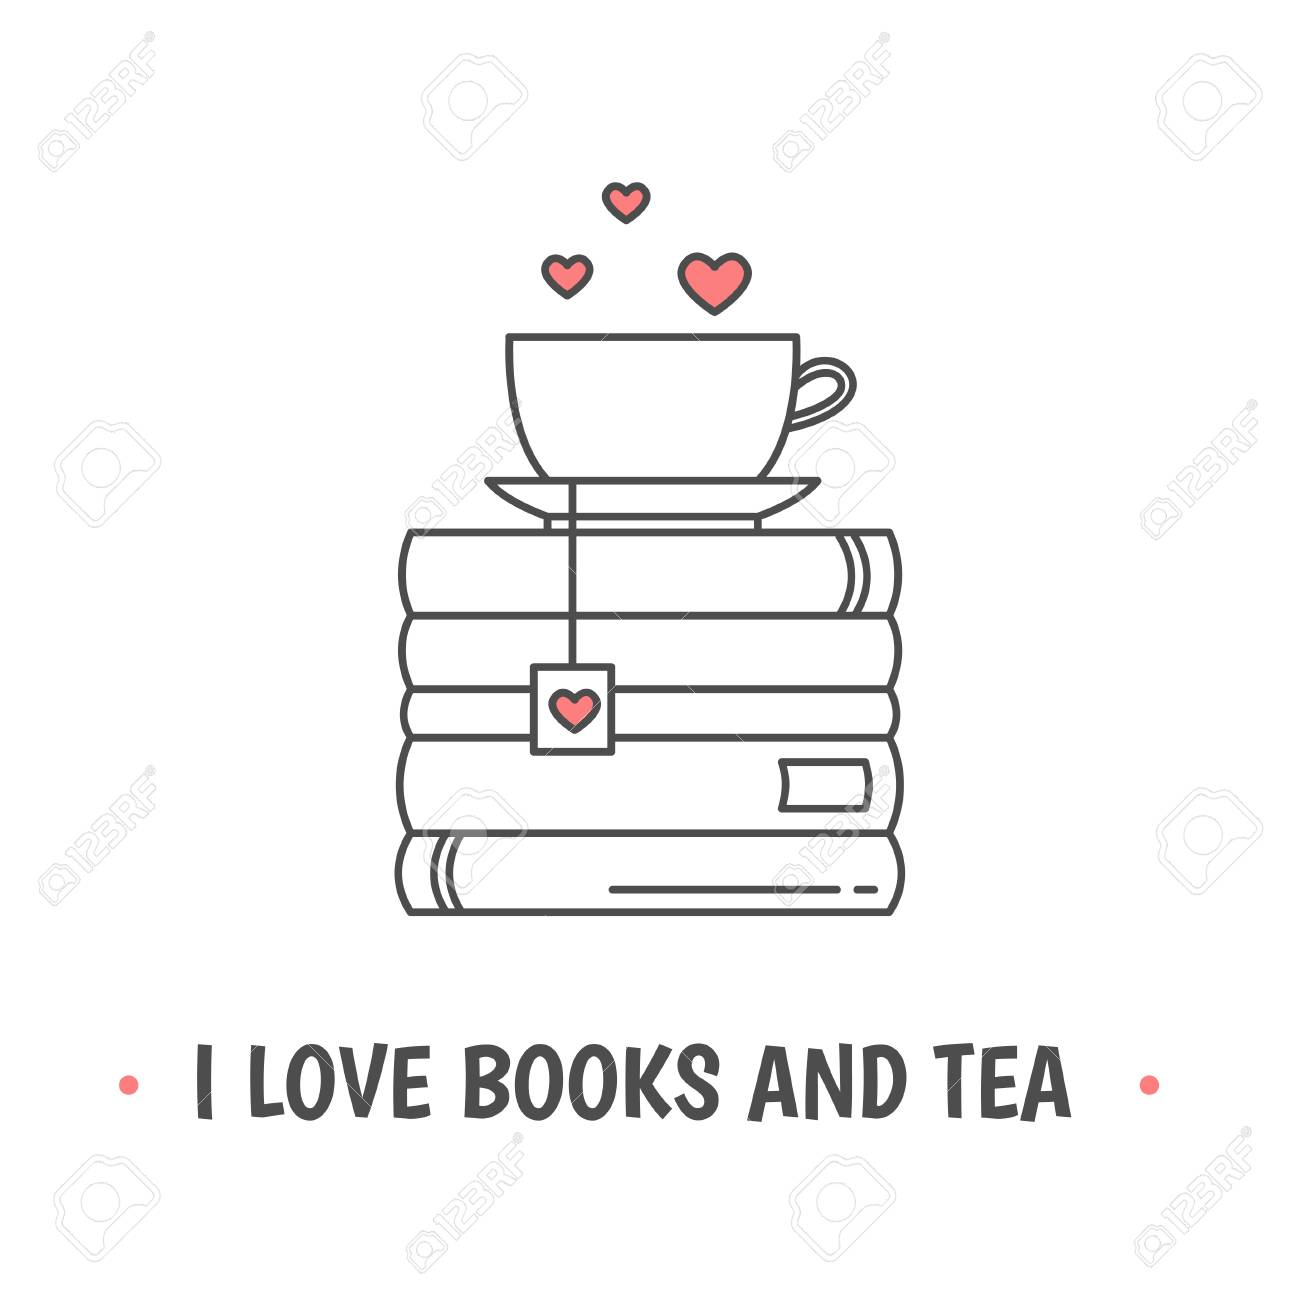 Pile of books and a mug with heart symbols. Quote «I love books and tea». I love reading concept. Line icon for libraries, stores, festivals, fairs and schools. Vector illustration. - 114917600